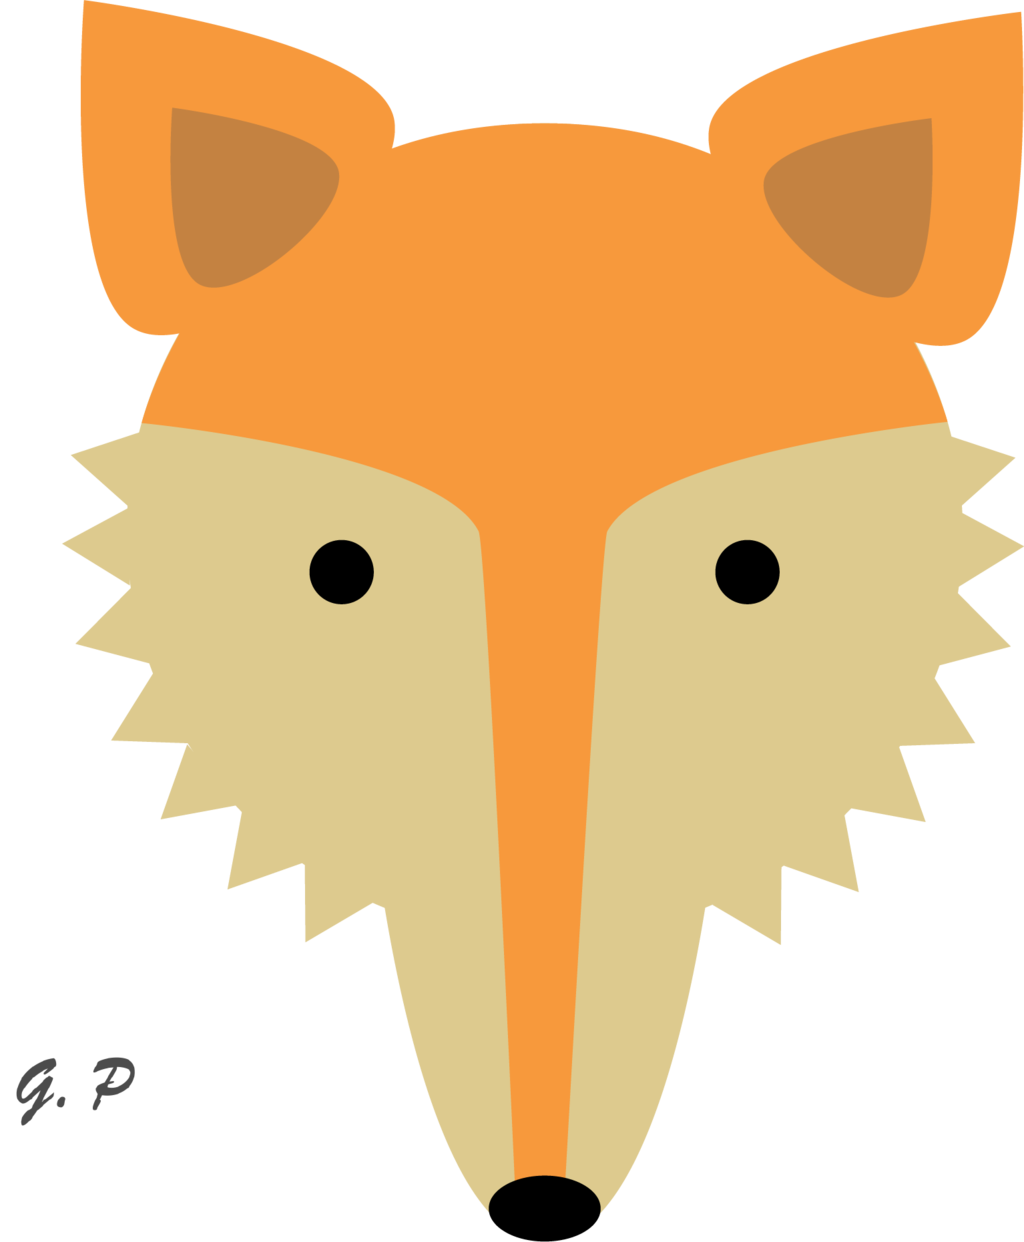 fox png clipart animals clip art downloadclipart #28570